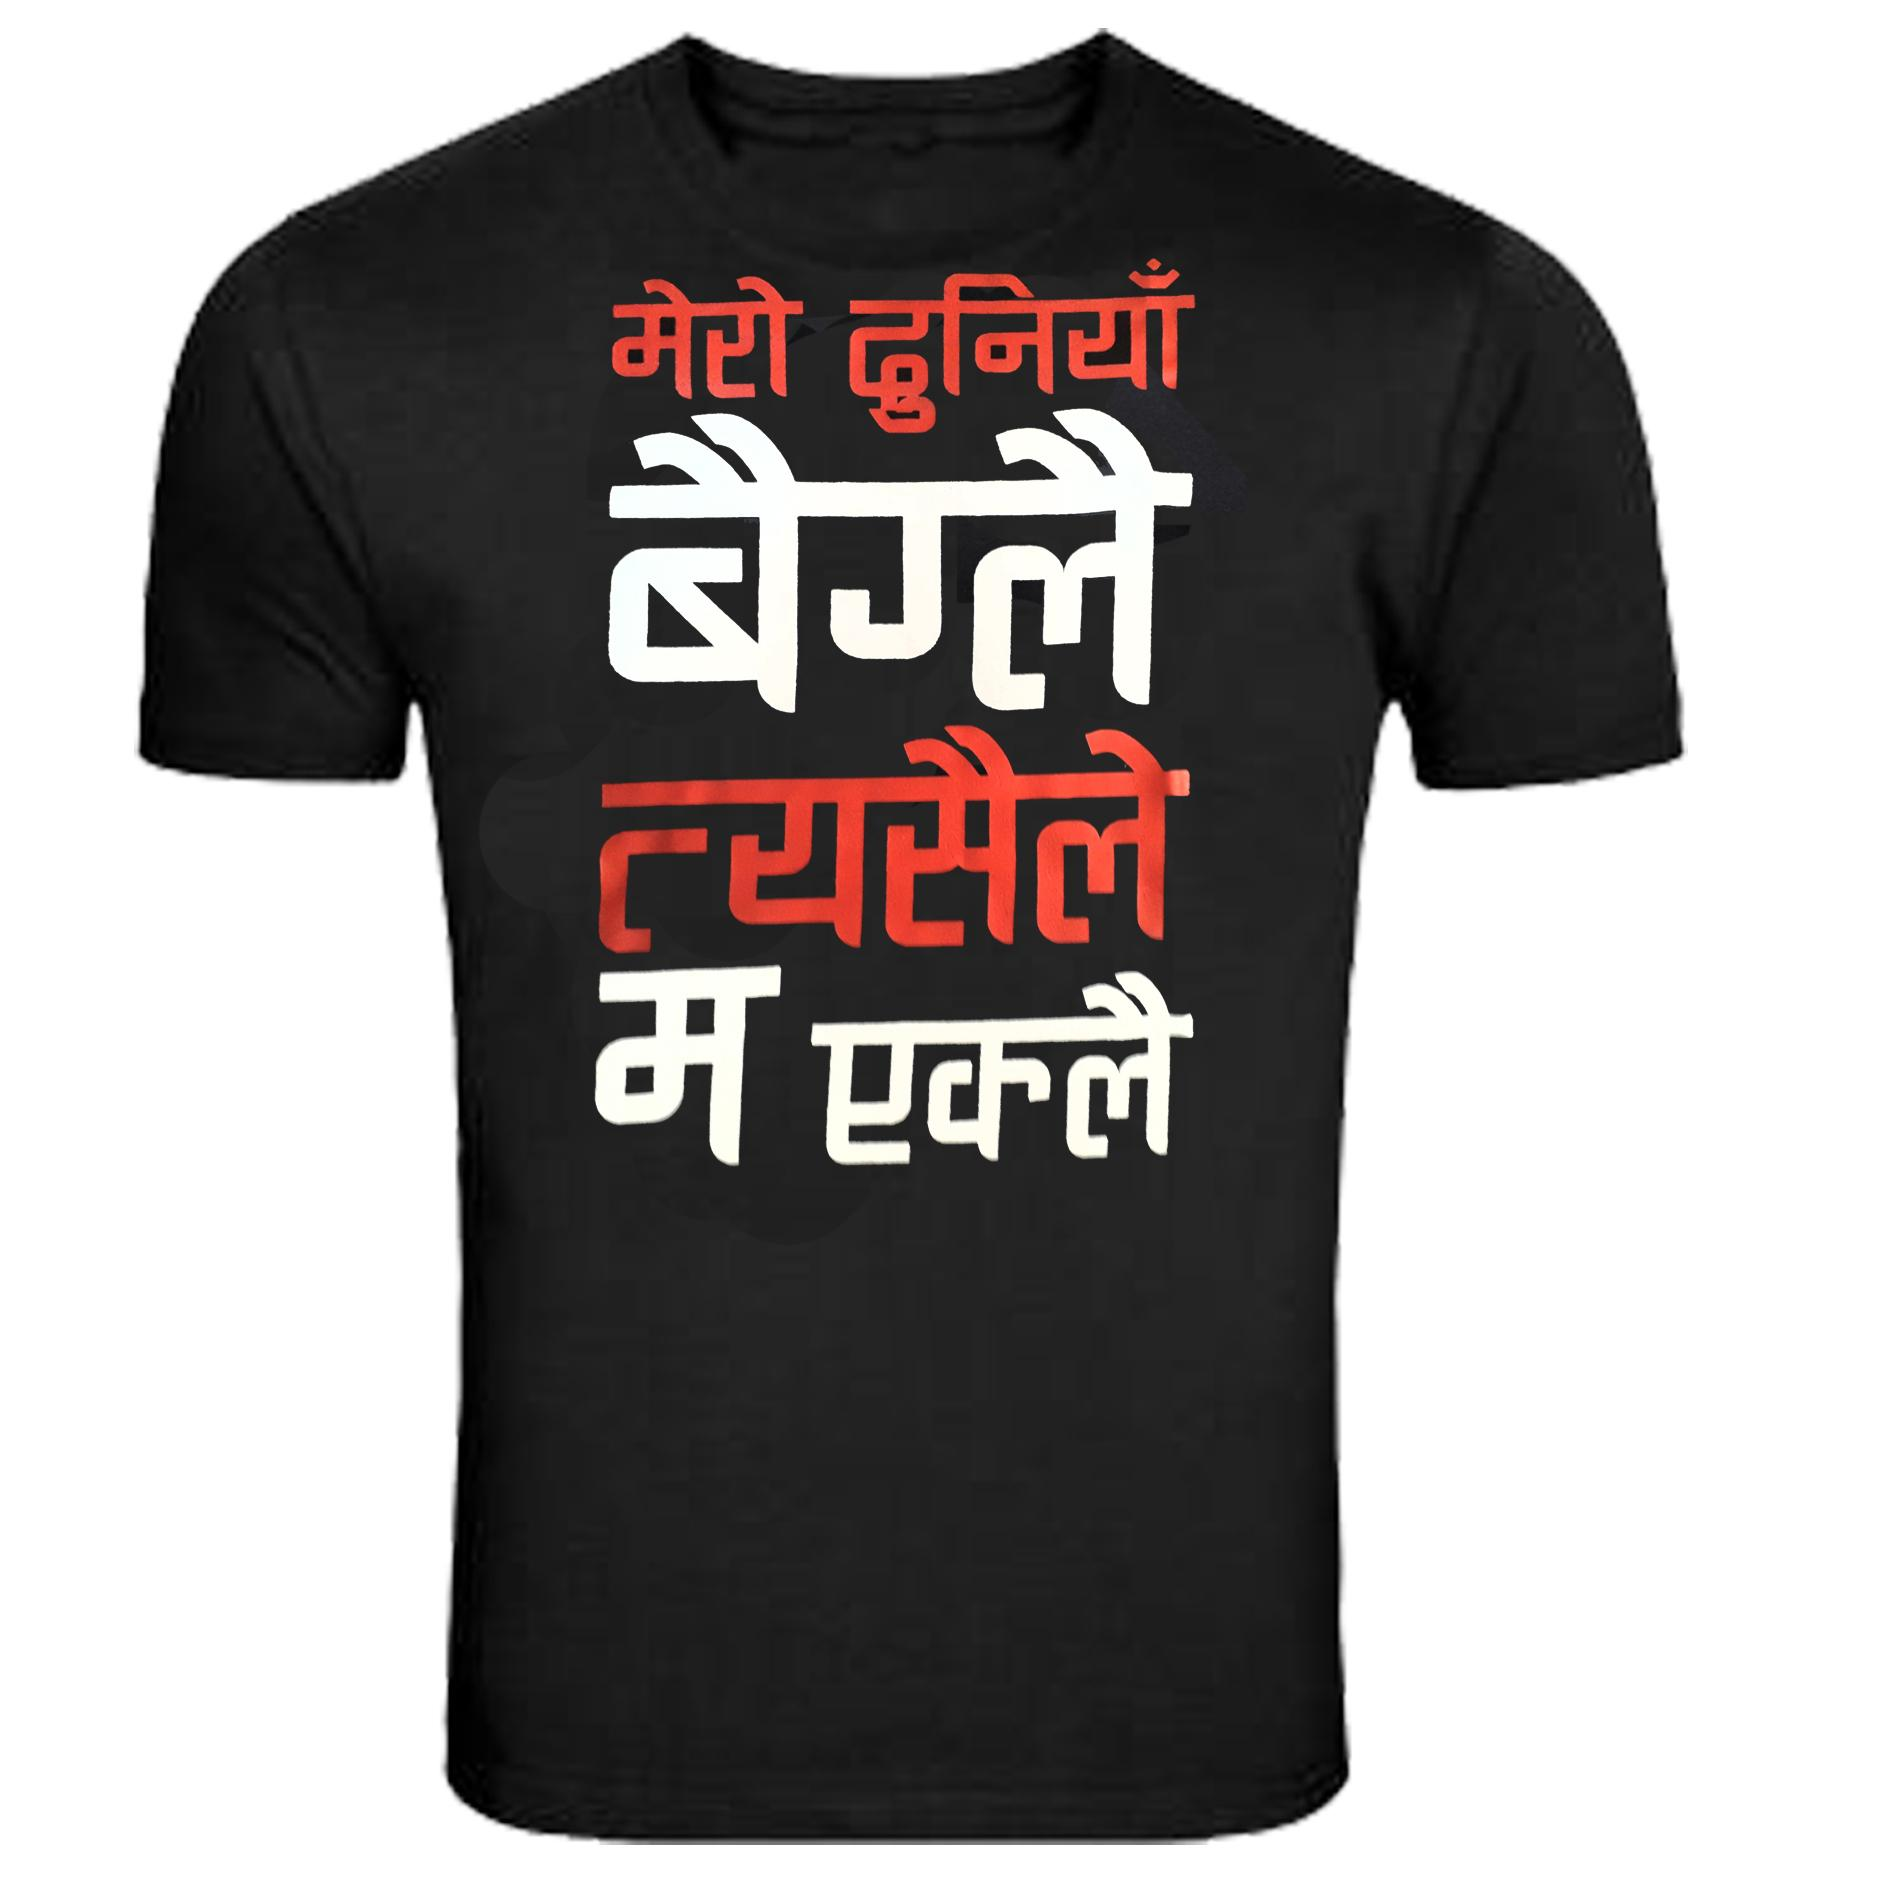 e18f226dc98 Nepali Quotes Mero Duniya Printed T-Shirt For Men